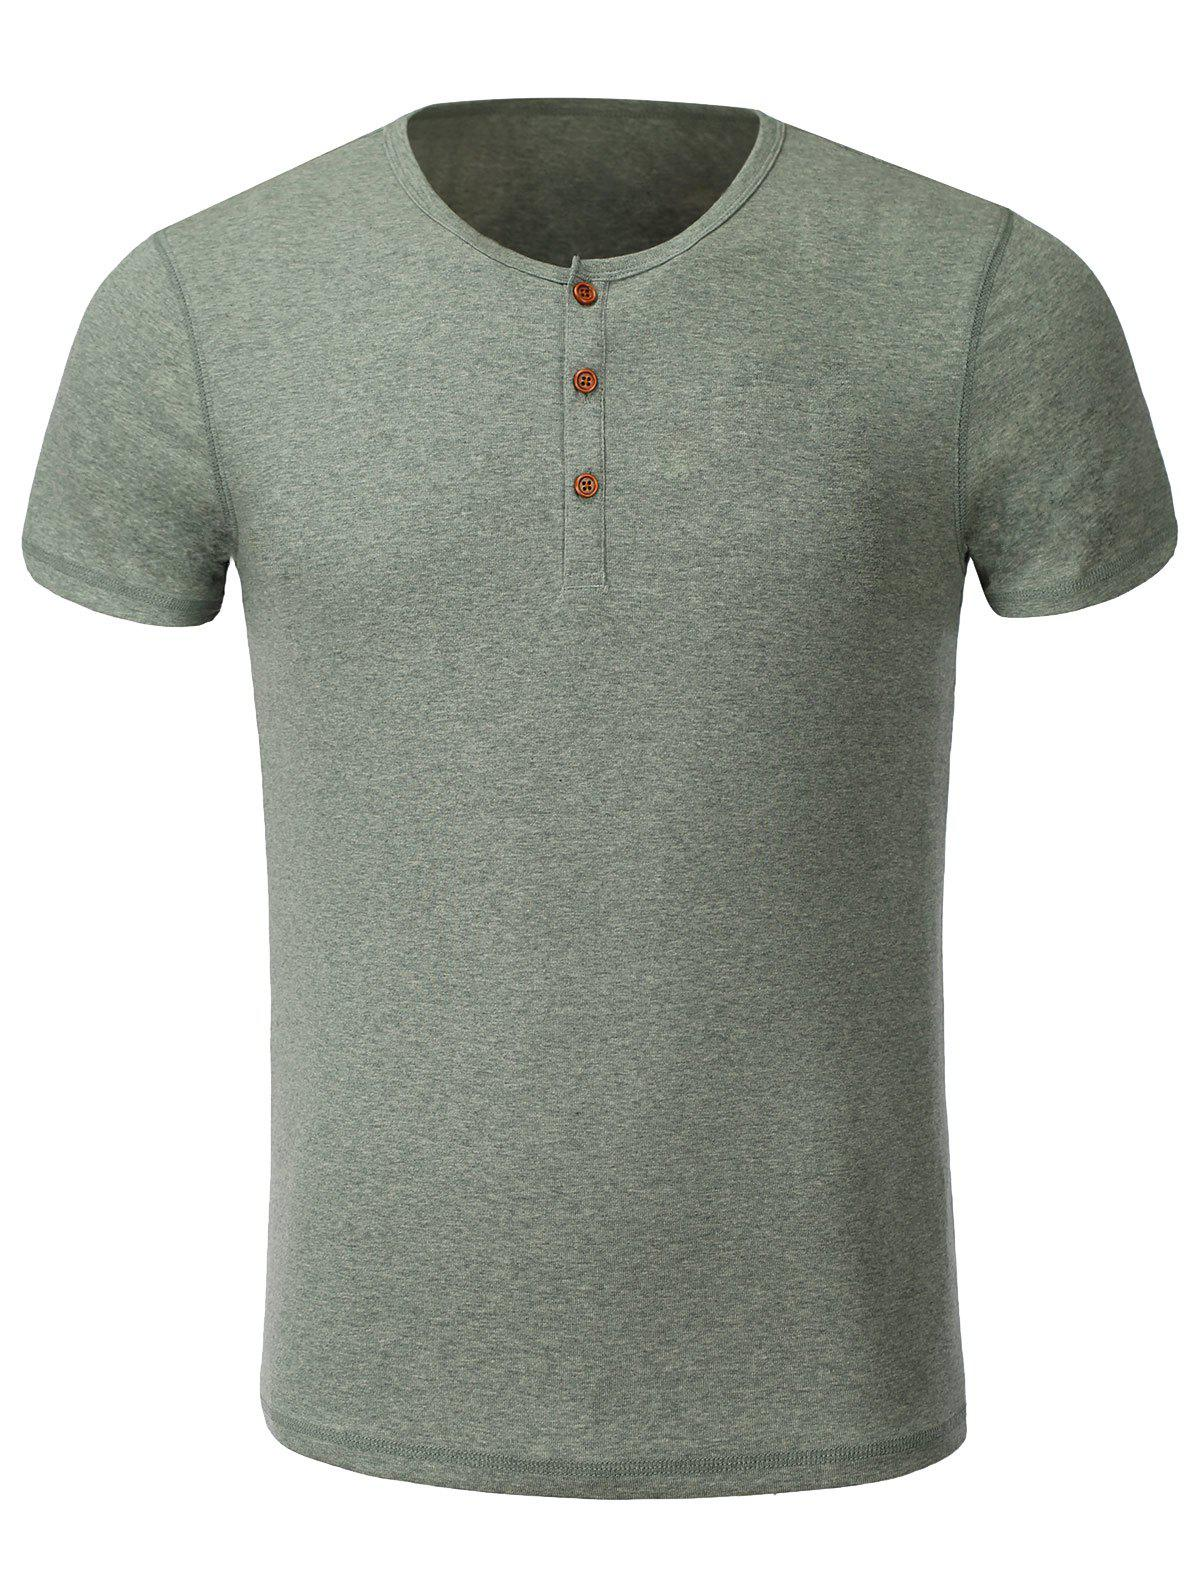 Gray xl casual solid color round collar short sleeves t for Round collar shirt men